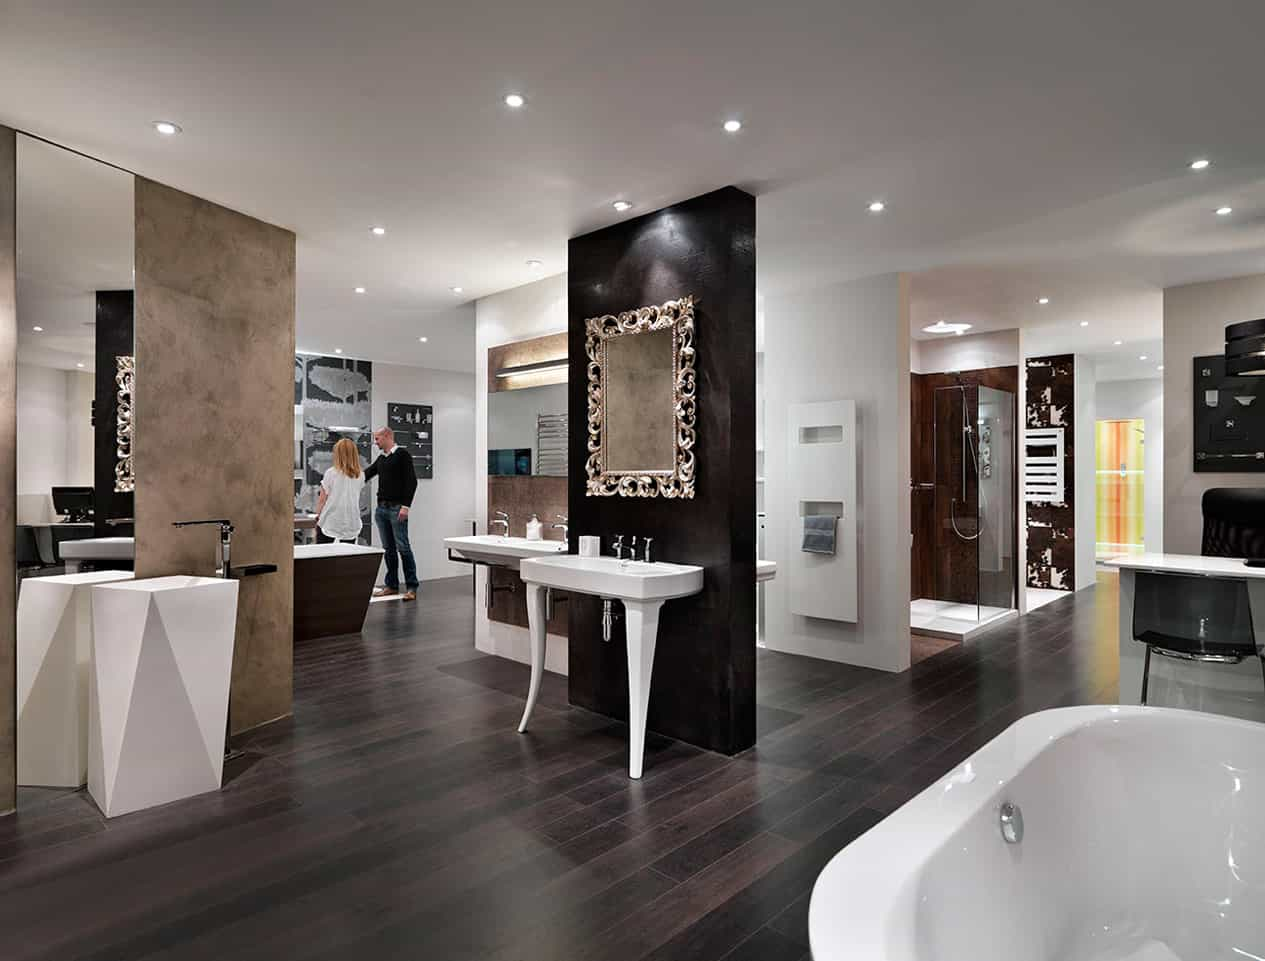 Showrooms Alternative Bathrooms London Bathrooms London